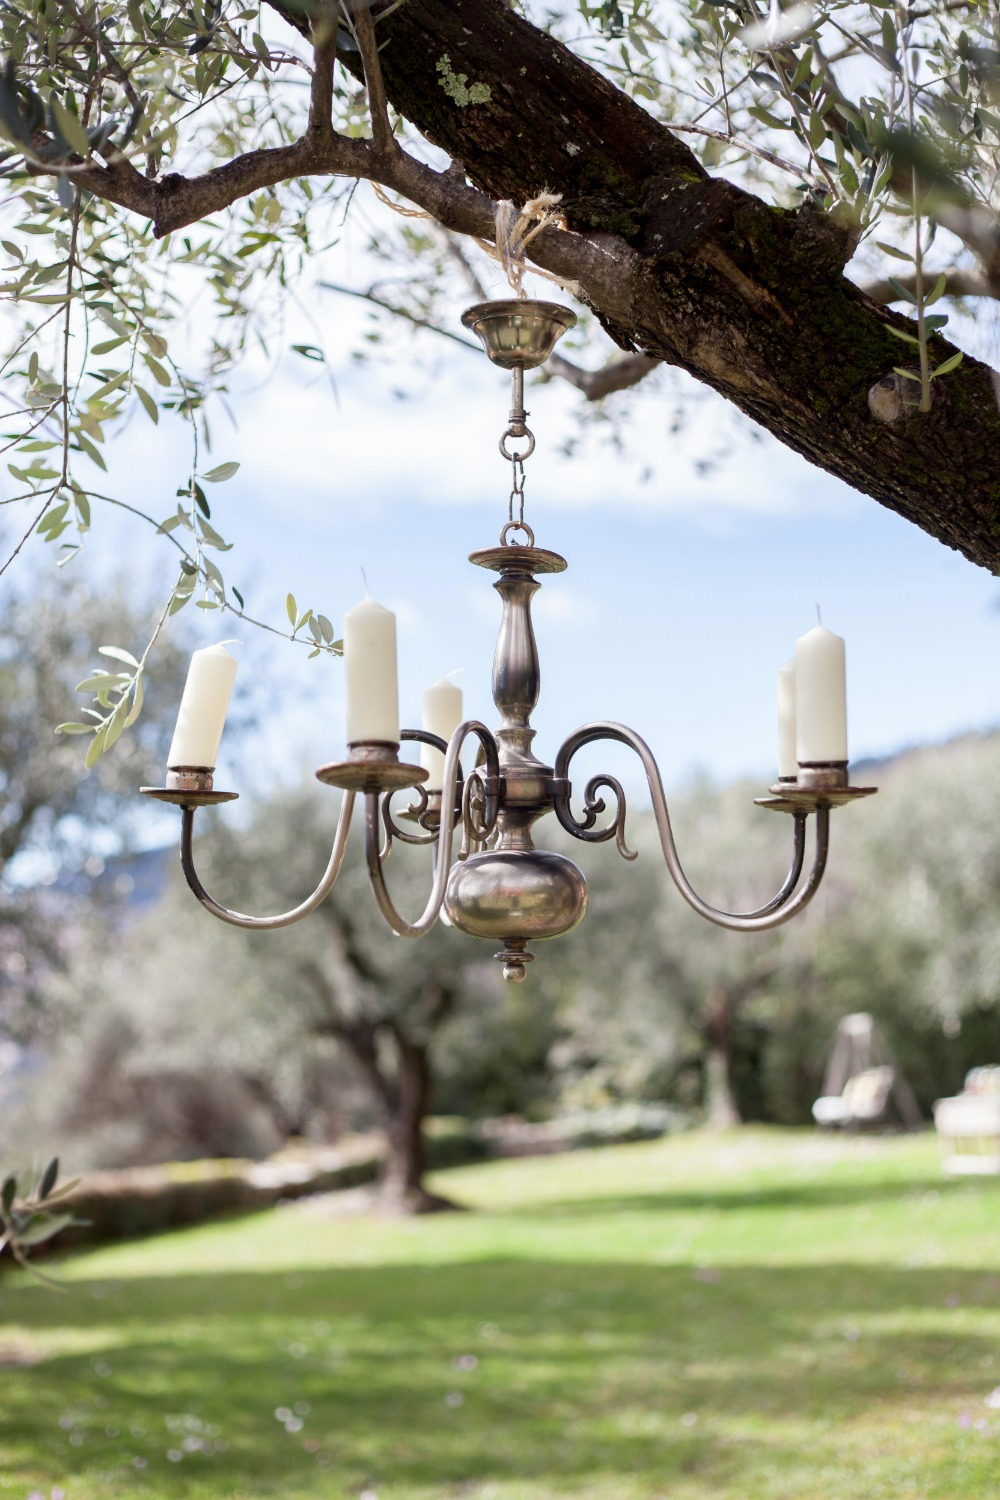 Gallery - Whimsical French Garden Wedding Ideas on french garden dinnerware, french garden antiques, french garden nursery, french garden plants, french garden decor, french garden pots, french garden tools, french garden paintings, french garden stoneware, french garden graphics, french garden gate, french garden arbors, french garden lanterns, french garden outdoor furniture, french garden design, french garden layout, french garden cloche, french garden stool, french garden pools, french garden fountains,